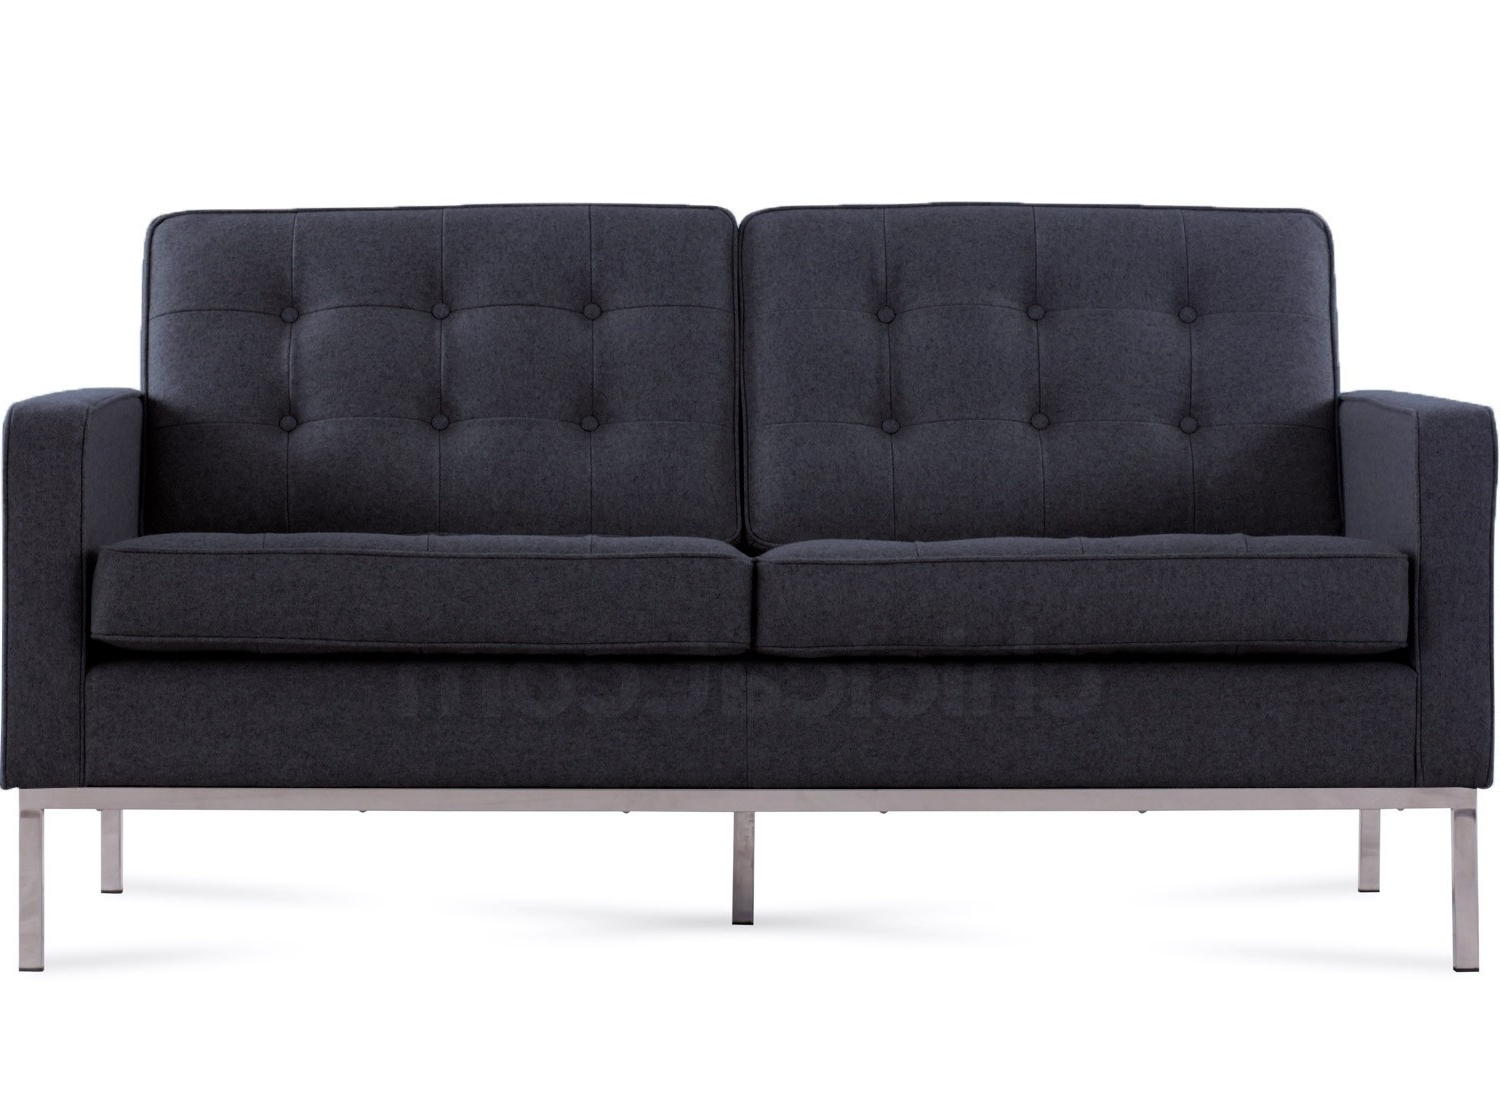 Recent Florence Knoll Sofa 2 Seater Charcoal Wool (Platinum Replica) Pertaining To Florence Knoll Wood Legs Sofas (View 15 of 15)